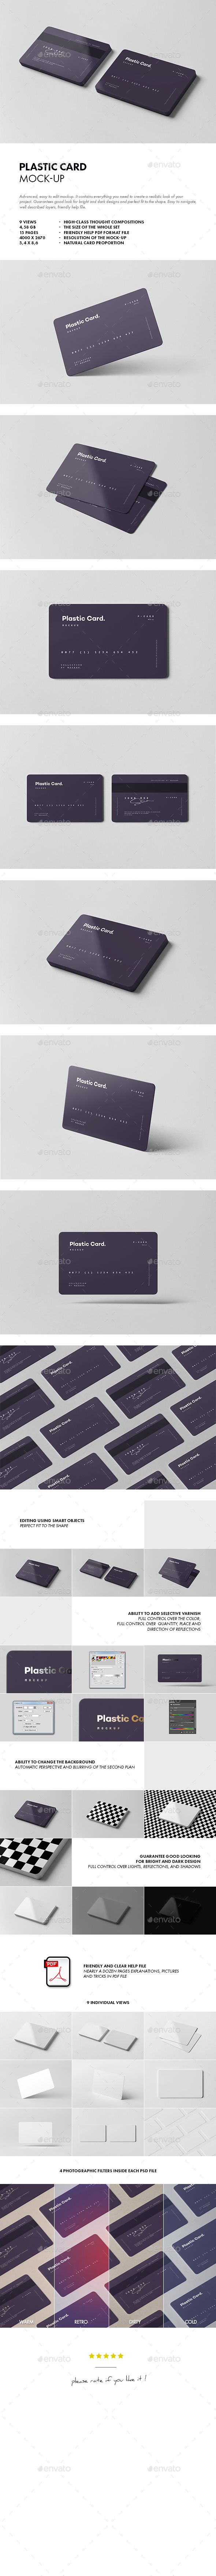 GraphicRiver Plastic Card Mock-up 21147824